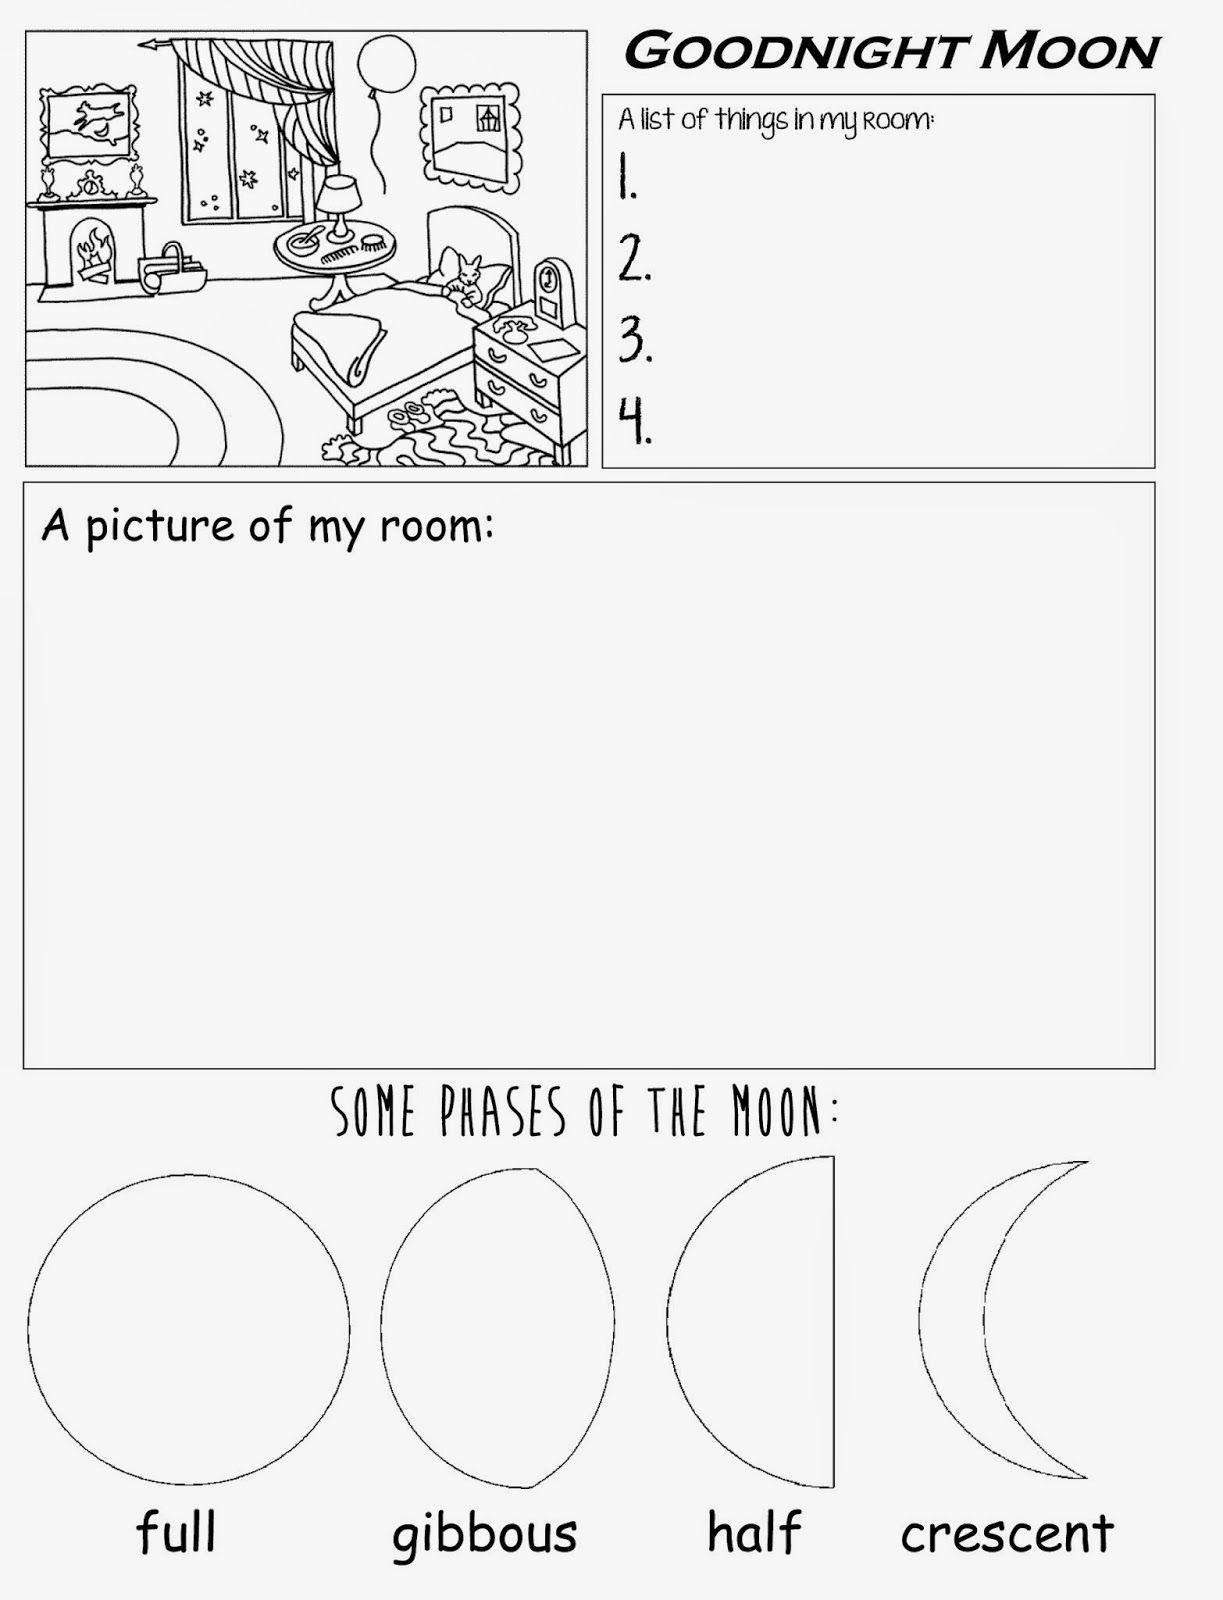 Goodnight Moon Free Printable Worksheet For Preschool Kindergarten | Phases Of The Moon Printable Worksheets